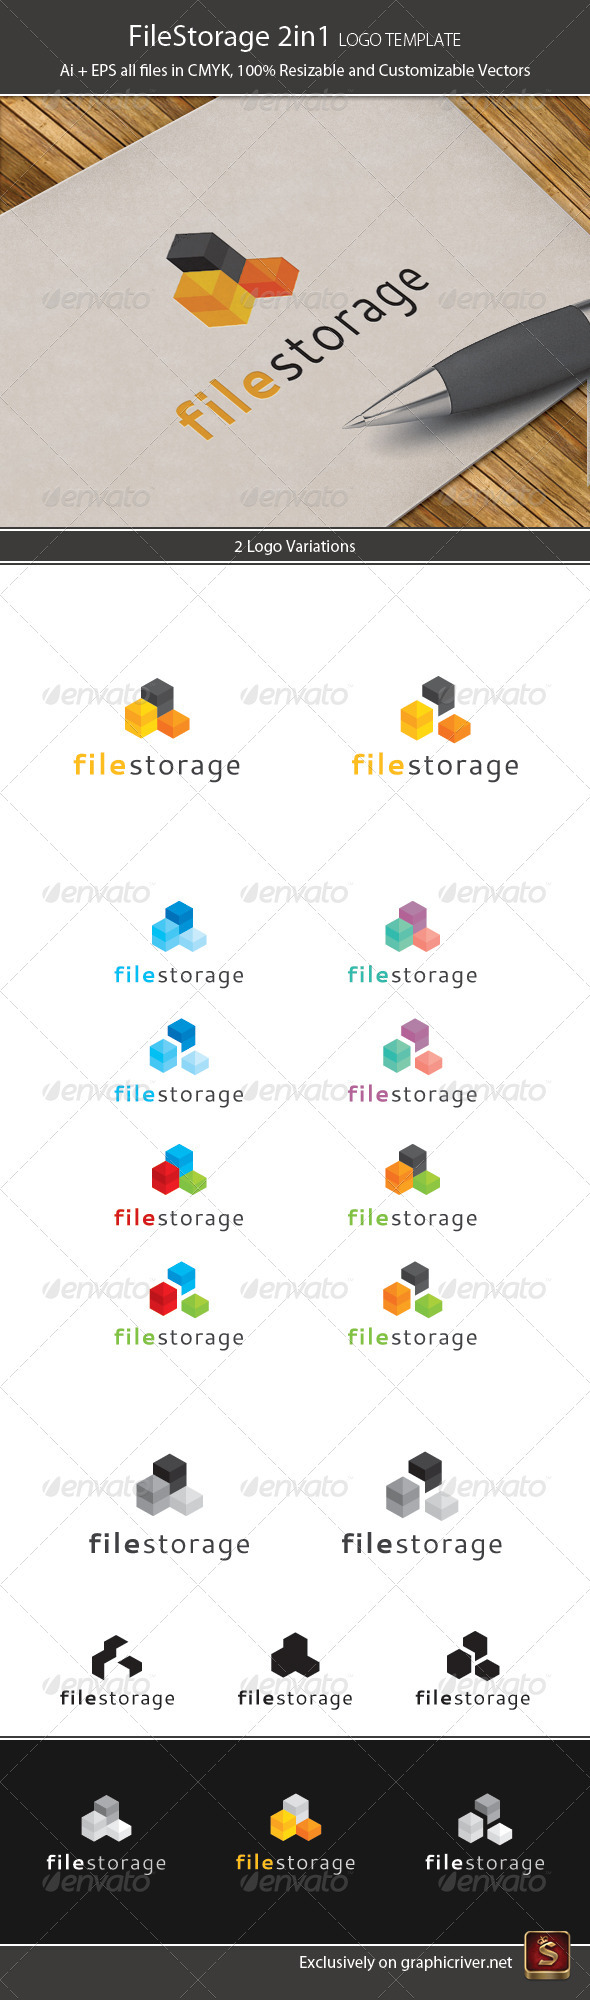 File Storage 2in1 Logo Template - Vector Abstract